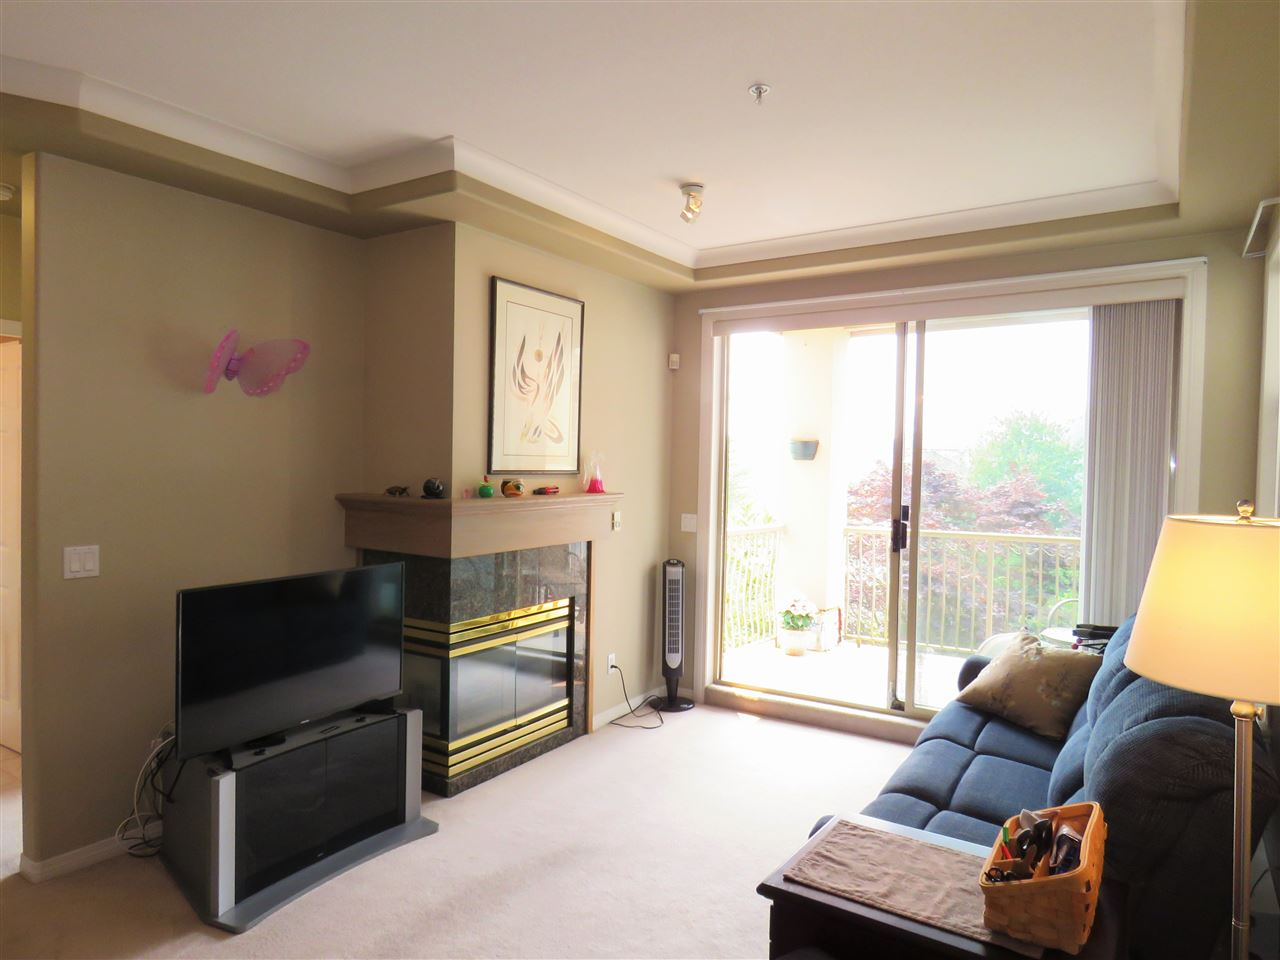 Condo Apartment at 309 3176 PLATEAU BOULEVARD, Unit 309, Coquitlam, British Columbia. Image 6